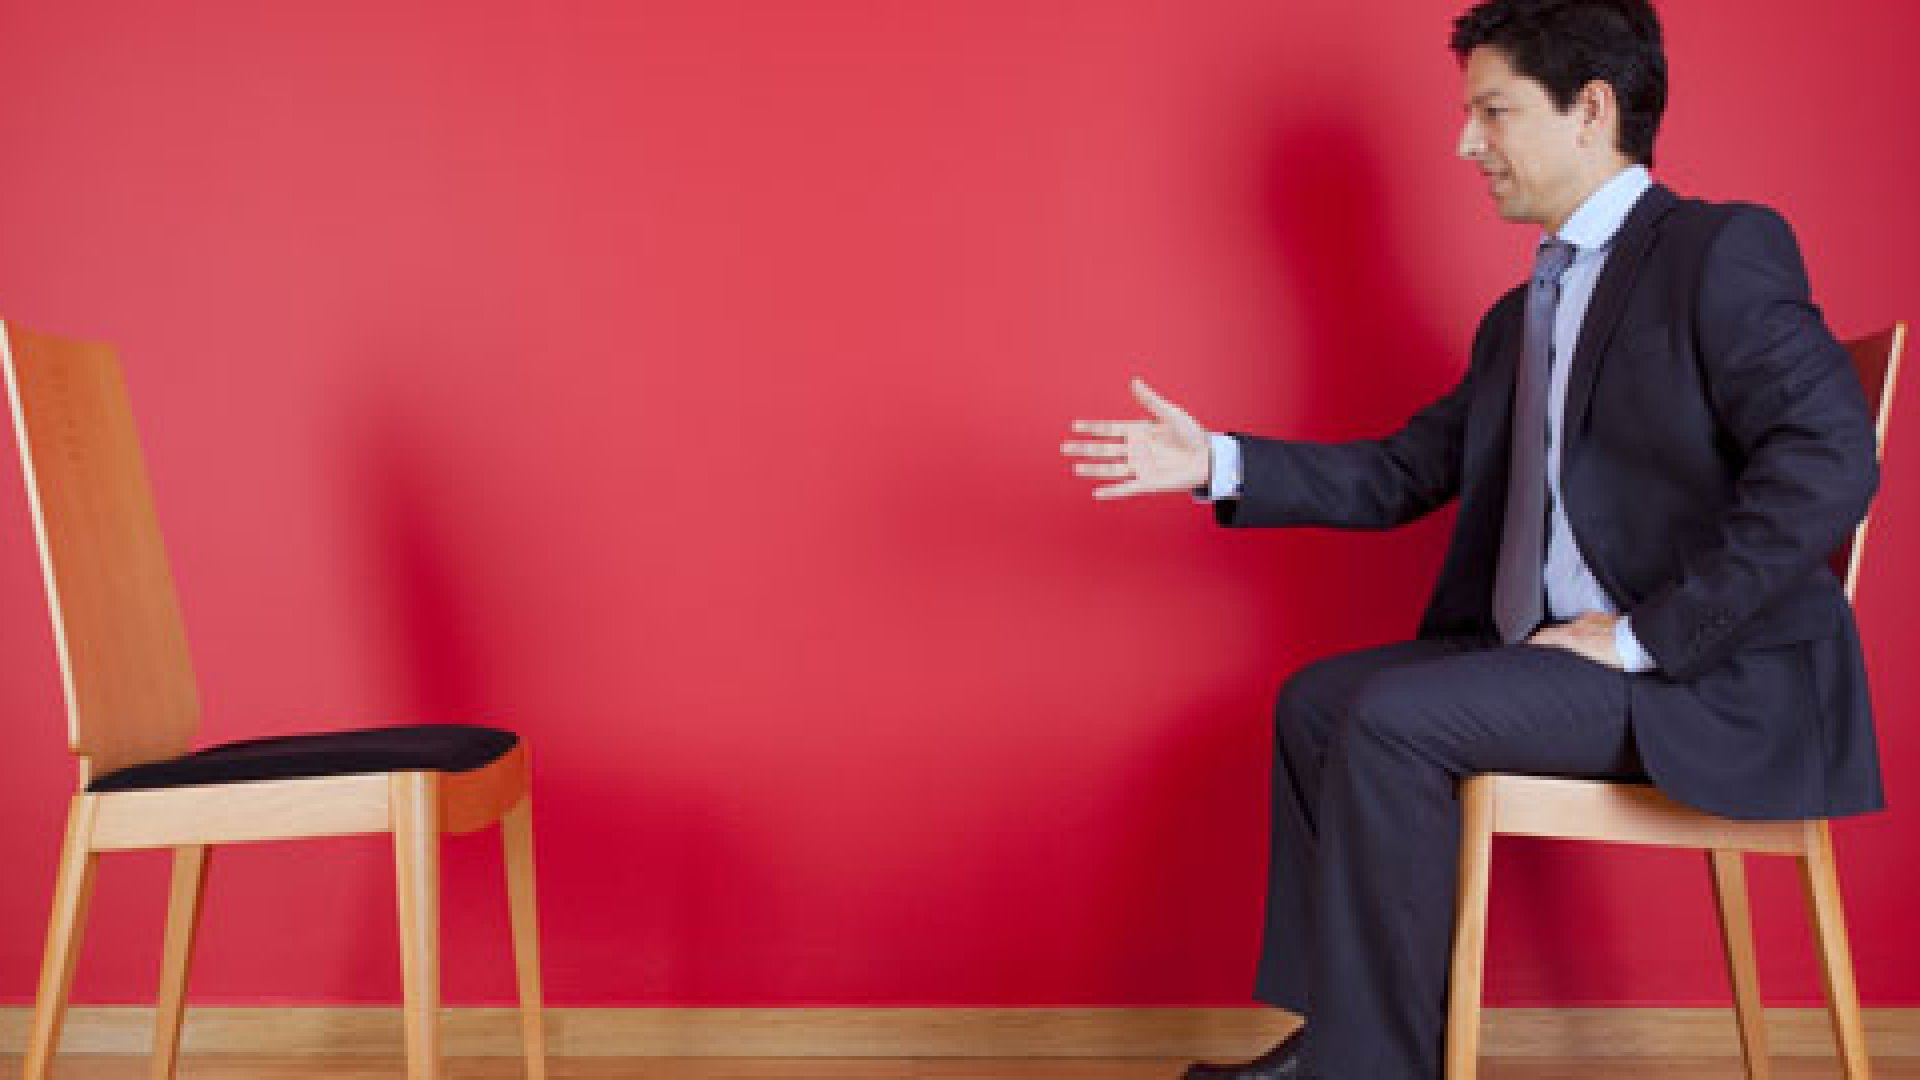 Selling Your Business? How to Negotiate a Purchase Offer